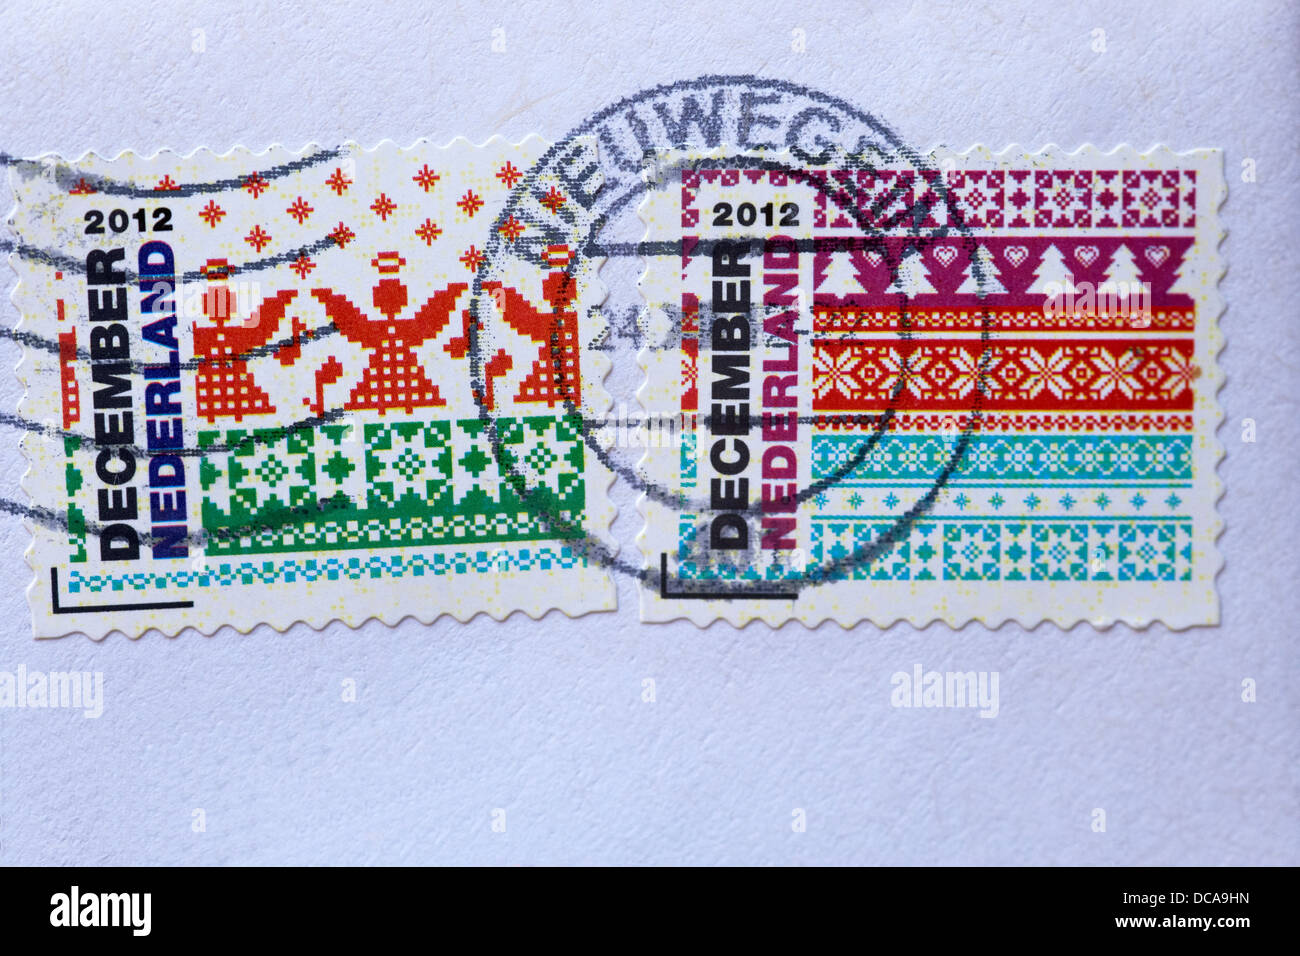 Dutch Christmas stamps 2012 - Stock Image